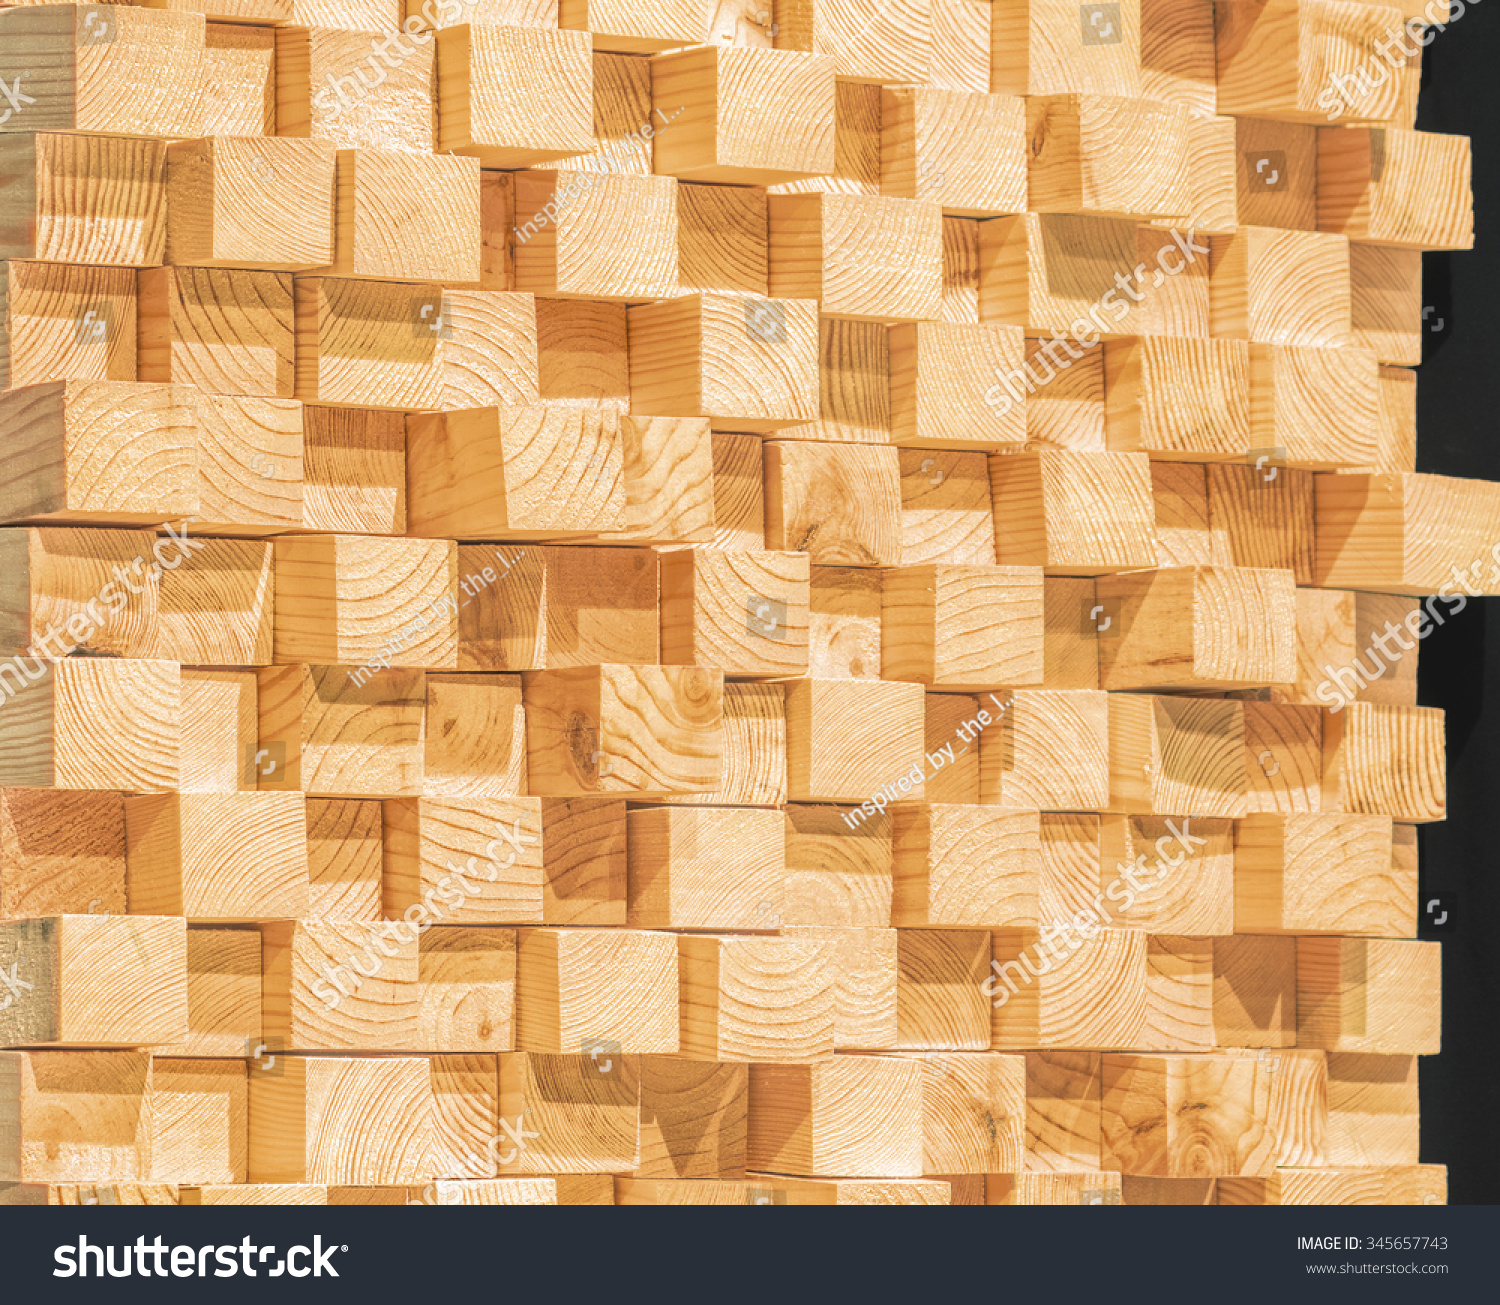 wooden soundproofing. pine timber | EZ Canvas